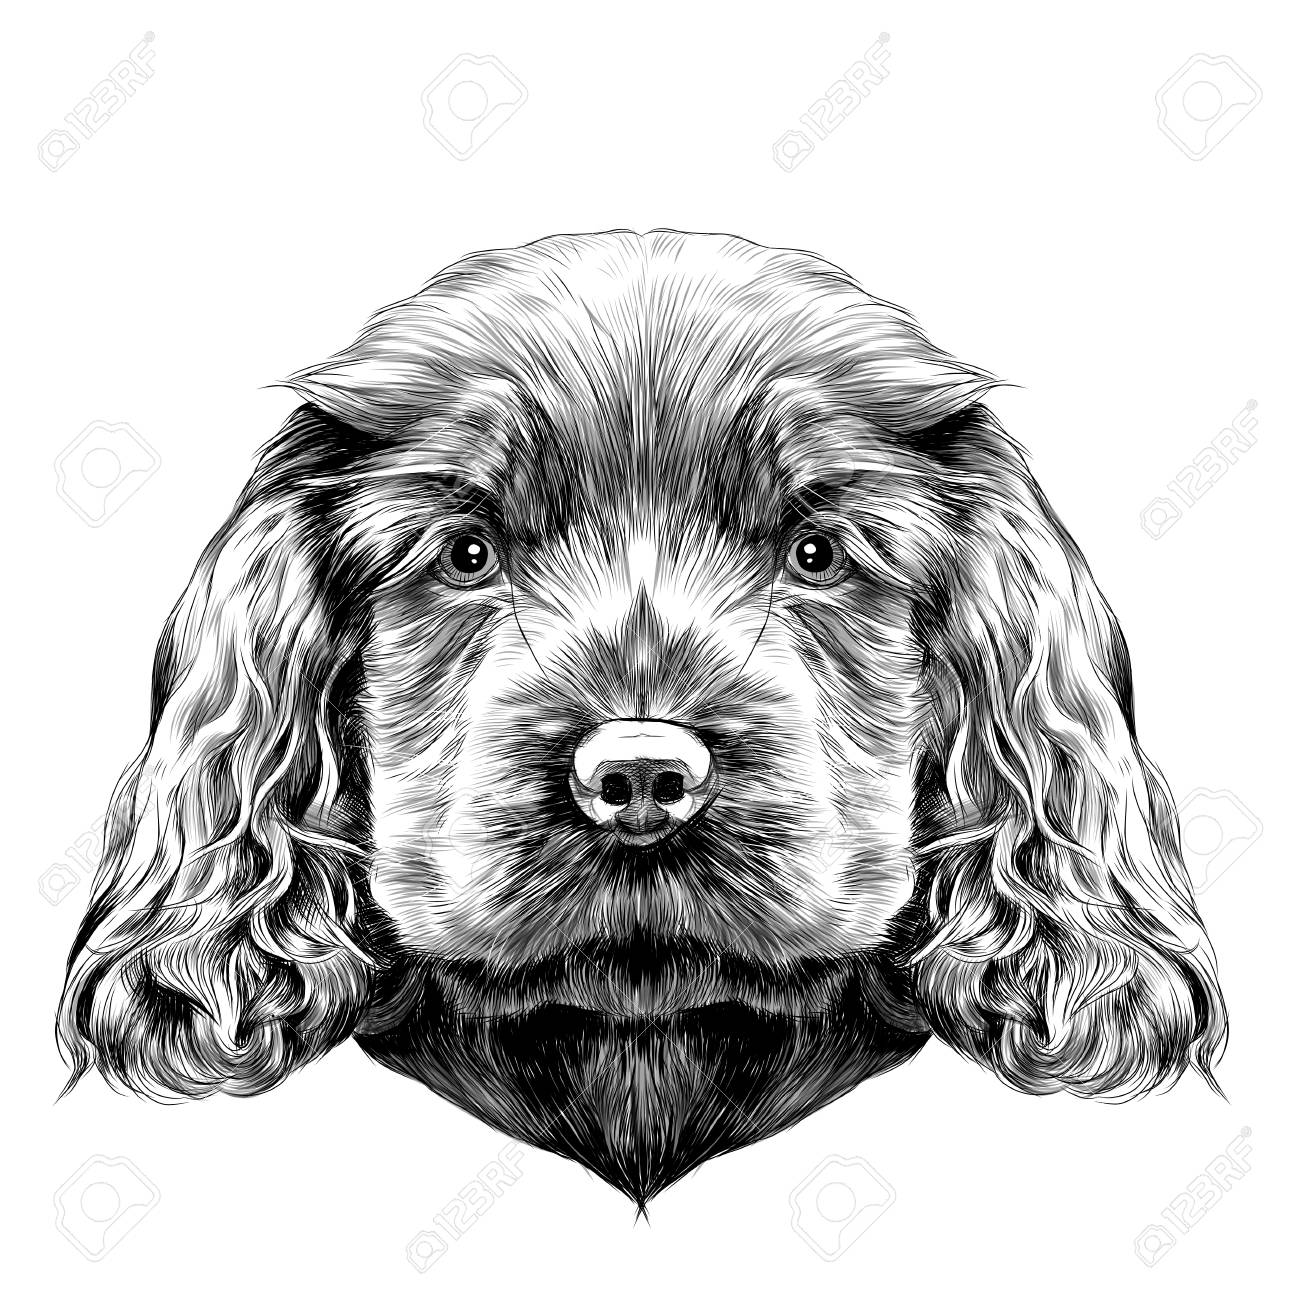 Dog Breed Cocker Spaniel Puppy Sketch Vector Graphics Black Royalty Free Cliparts Vectors And Stock Illustration Image 80724412